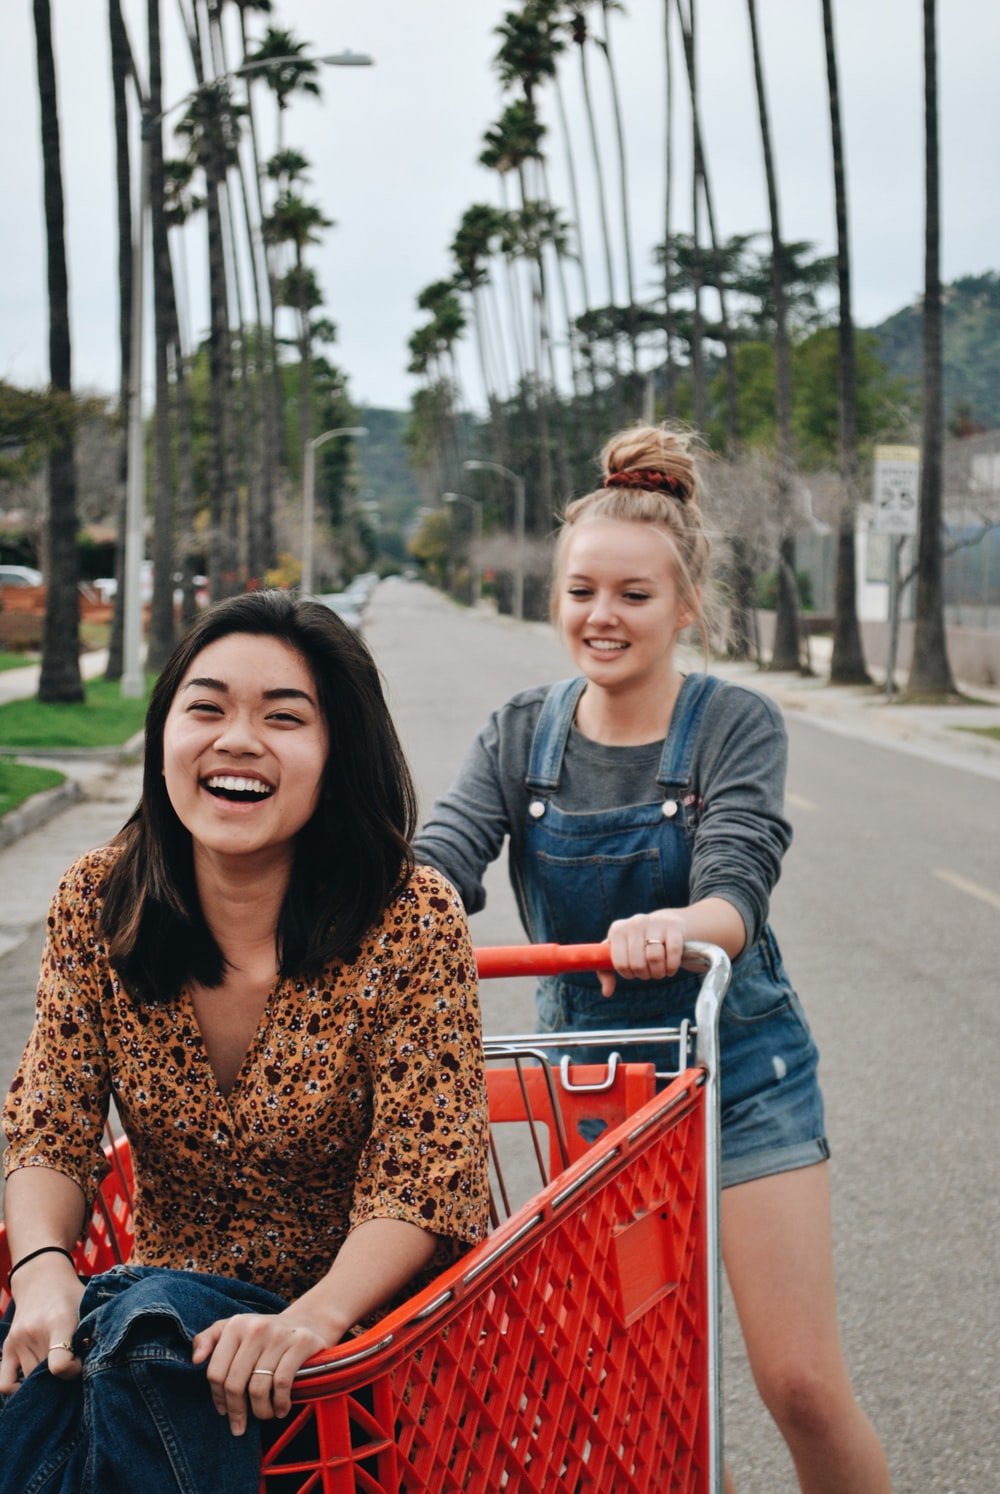 two women riding on shopping cart on road between trees during daytime